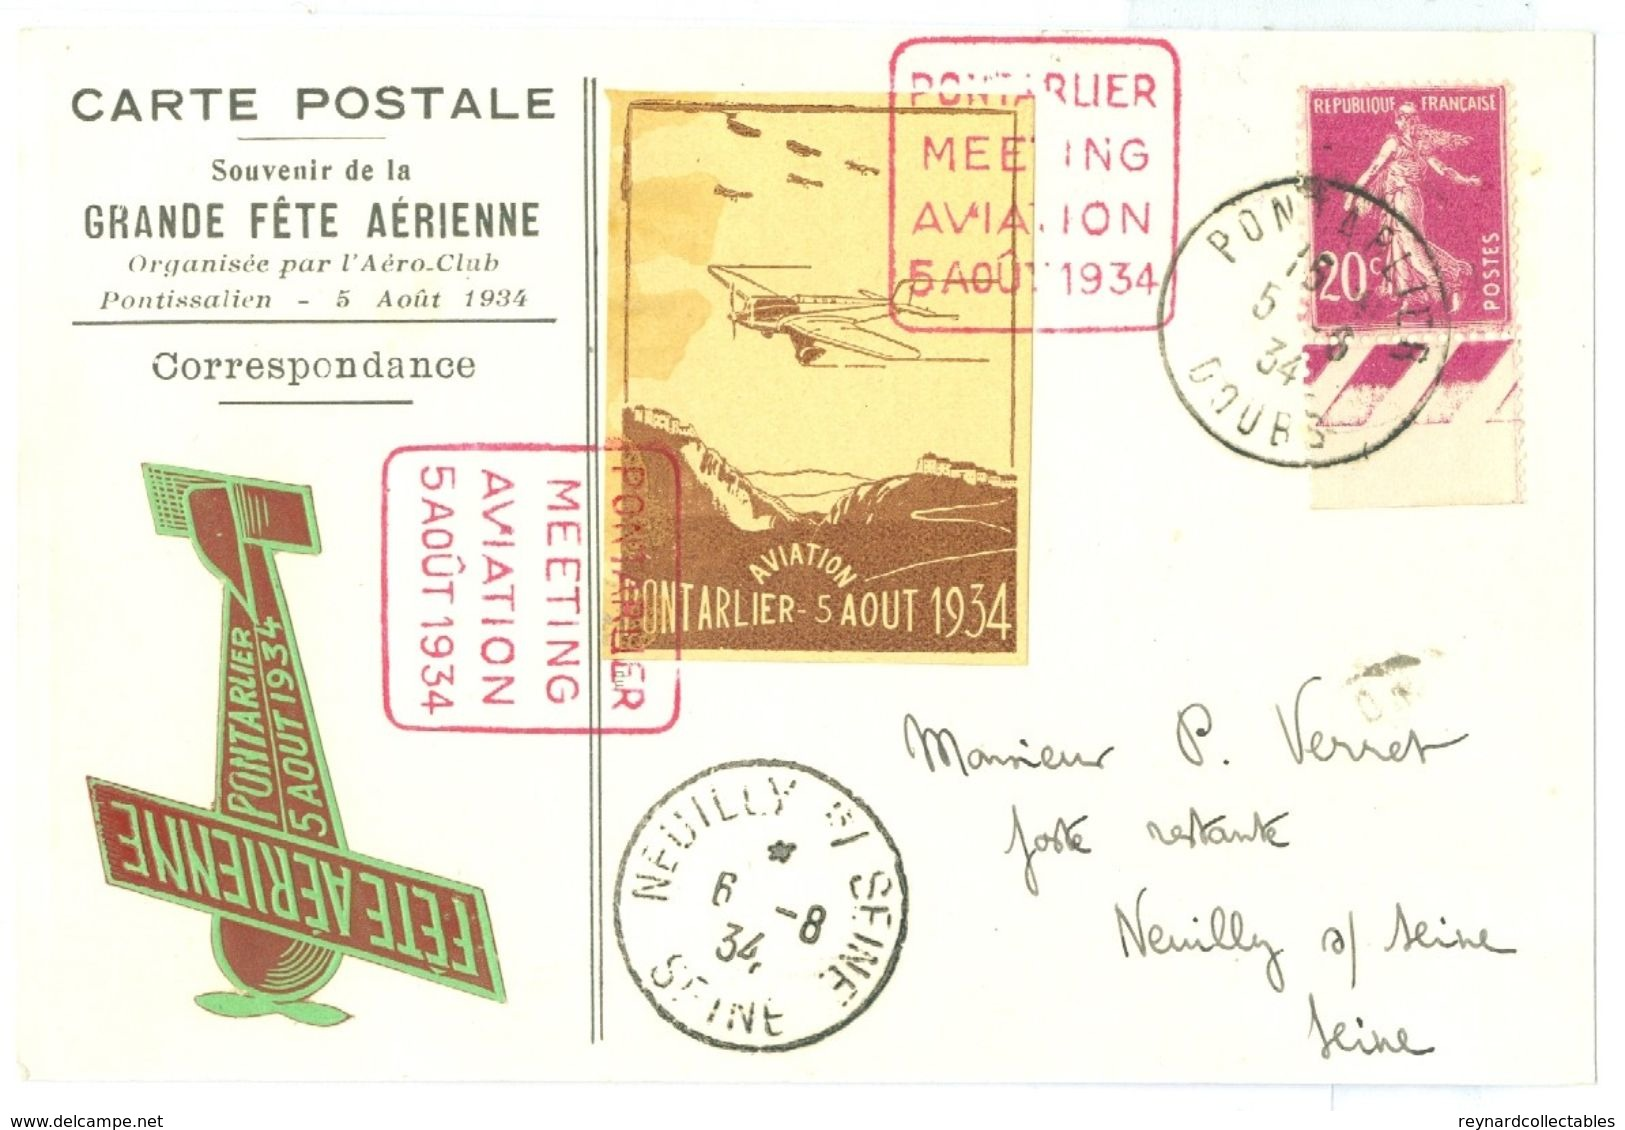 1934 France Grande Fete Aerienne Pontarlier Airplane Picture Pc With Plane Vignette++ - Airmail